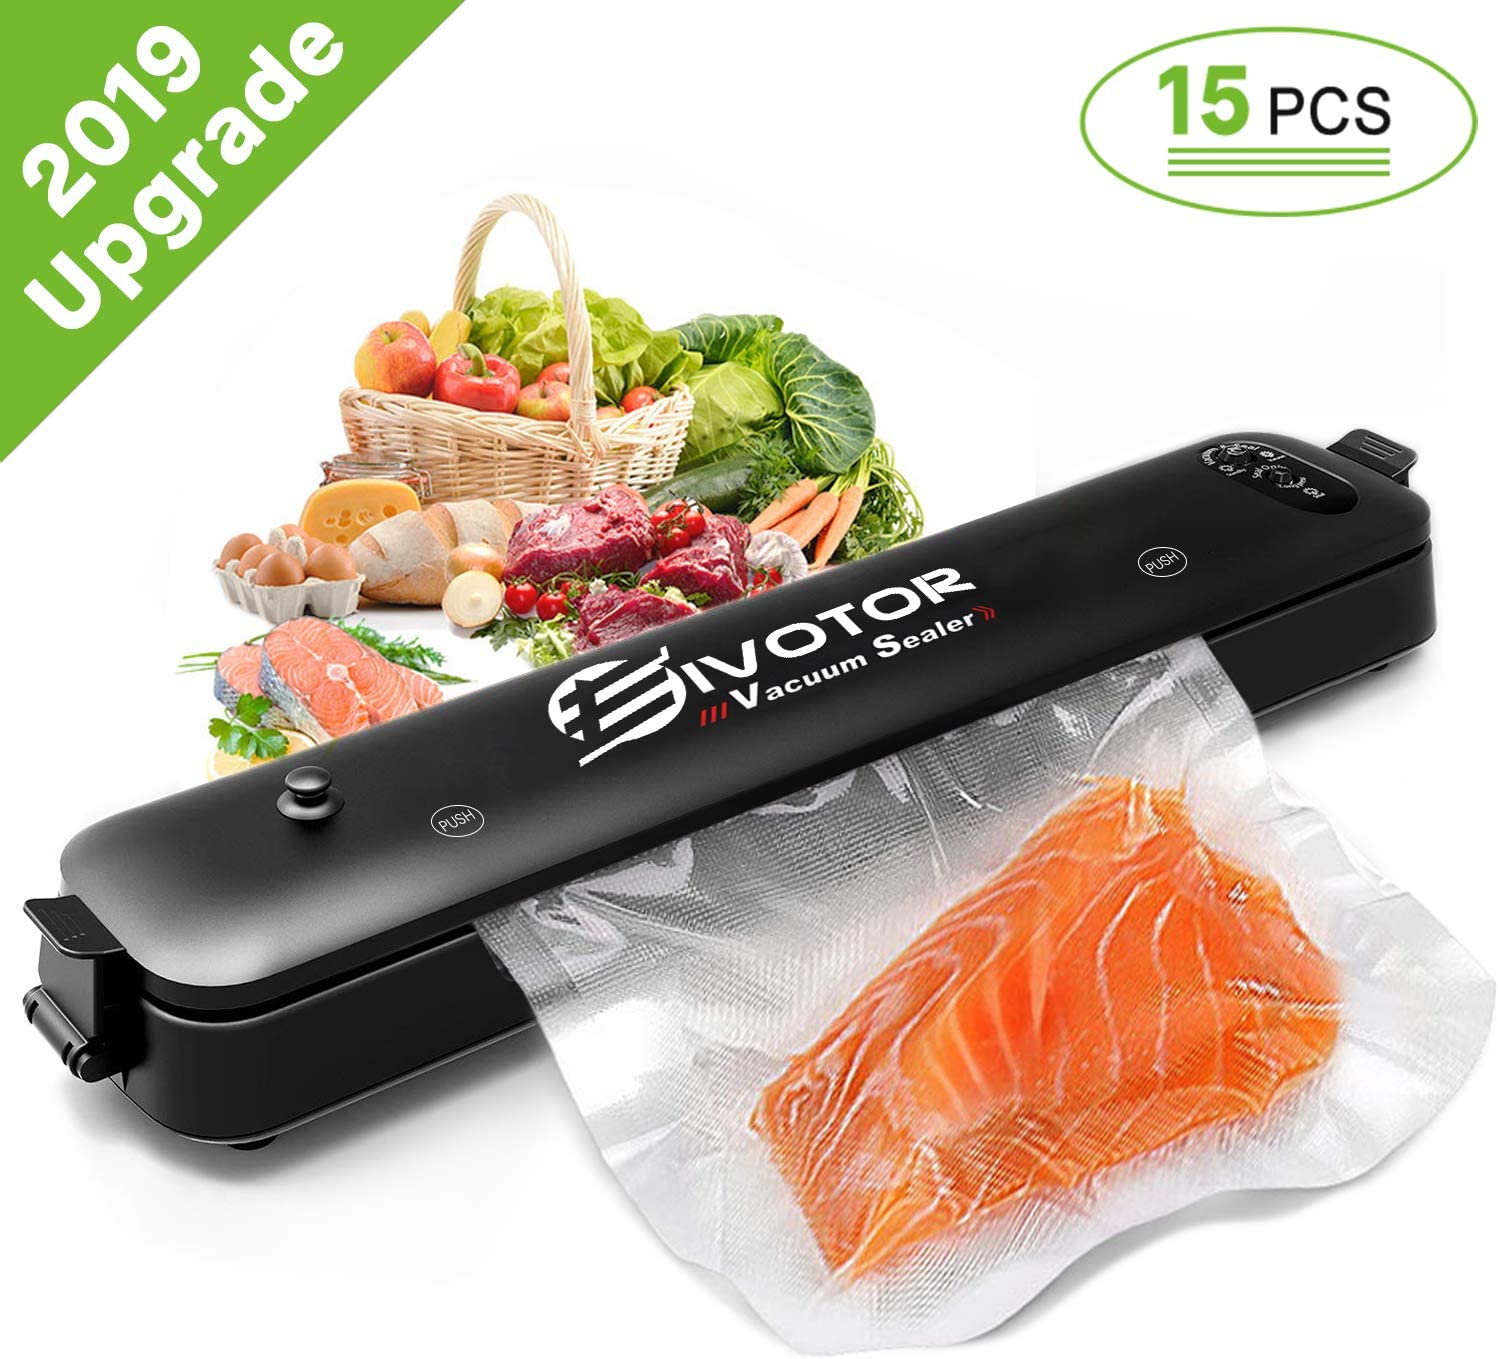 Food Vacuum Sealer Machine, EIVOTOR Sous Vide Vacuum Sealer Machine Automatic Multifunction Vacuum Sealing System for Food Savers, Dry Moist Sealing Mode, Led Lights, with 15pcs Vacuum Sealer Bags